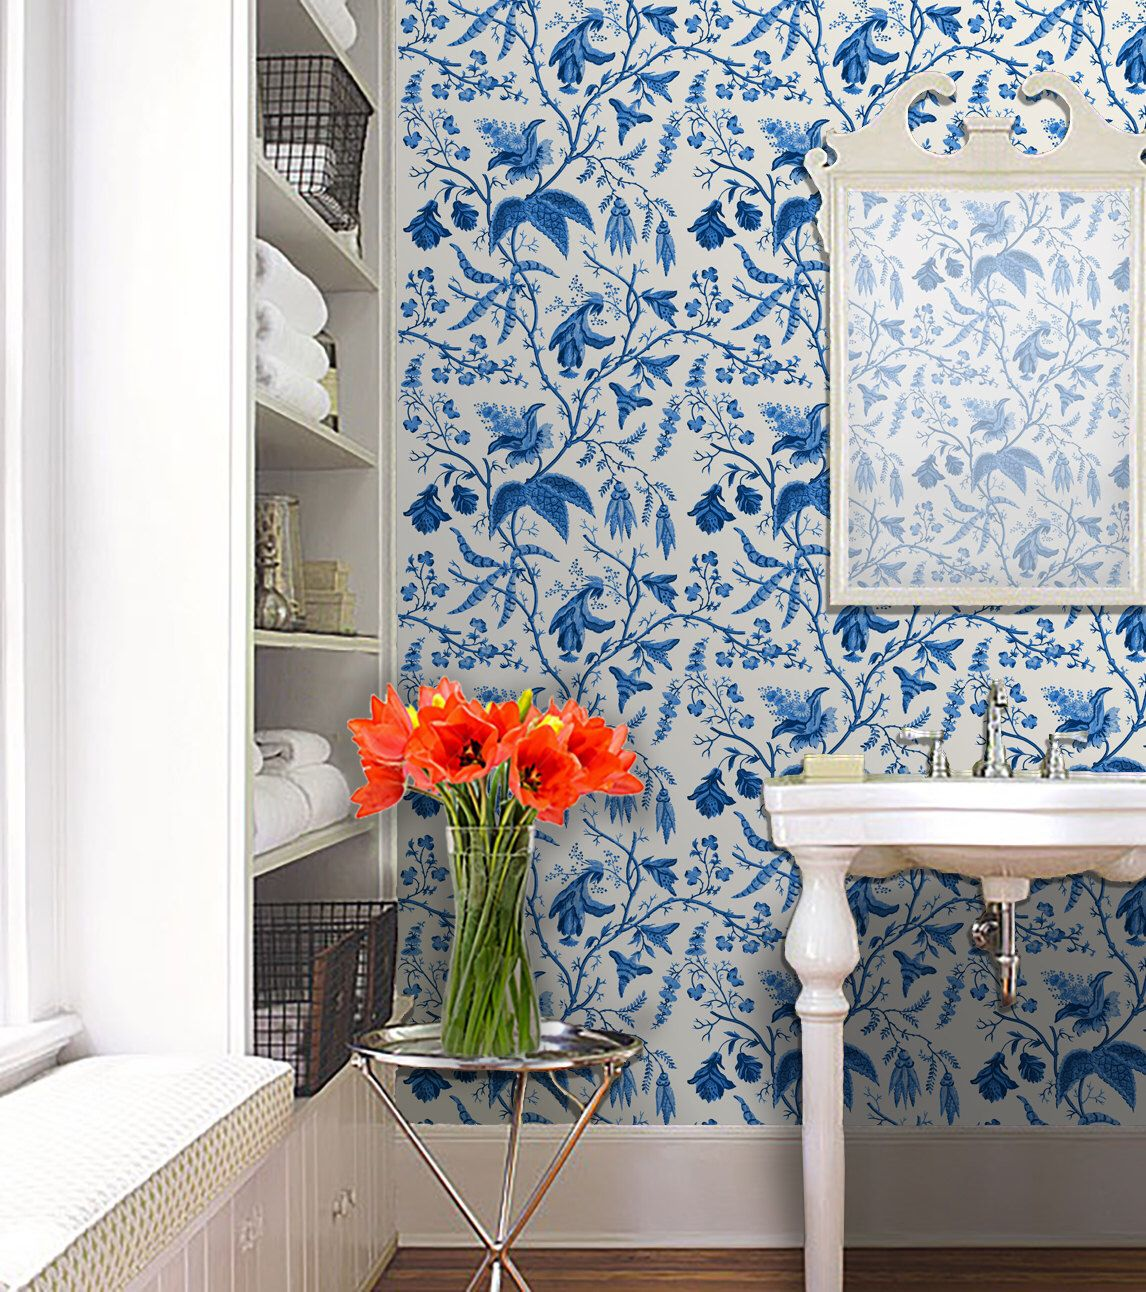 Chinoise Blue Peel N Stick Or Traditional Wallpaper Custom Colors Made In The Usa Vinyl Free Non Toxic House Interior Interior Decor